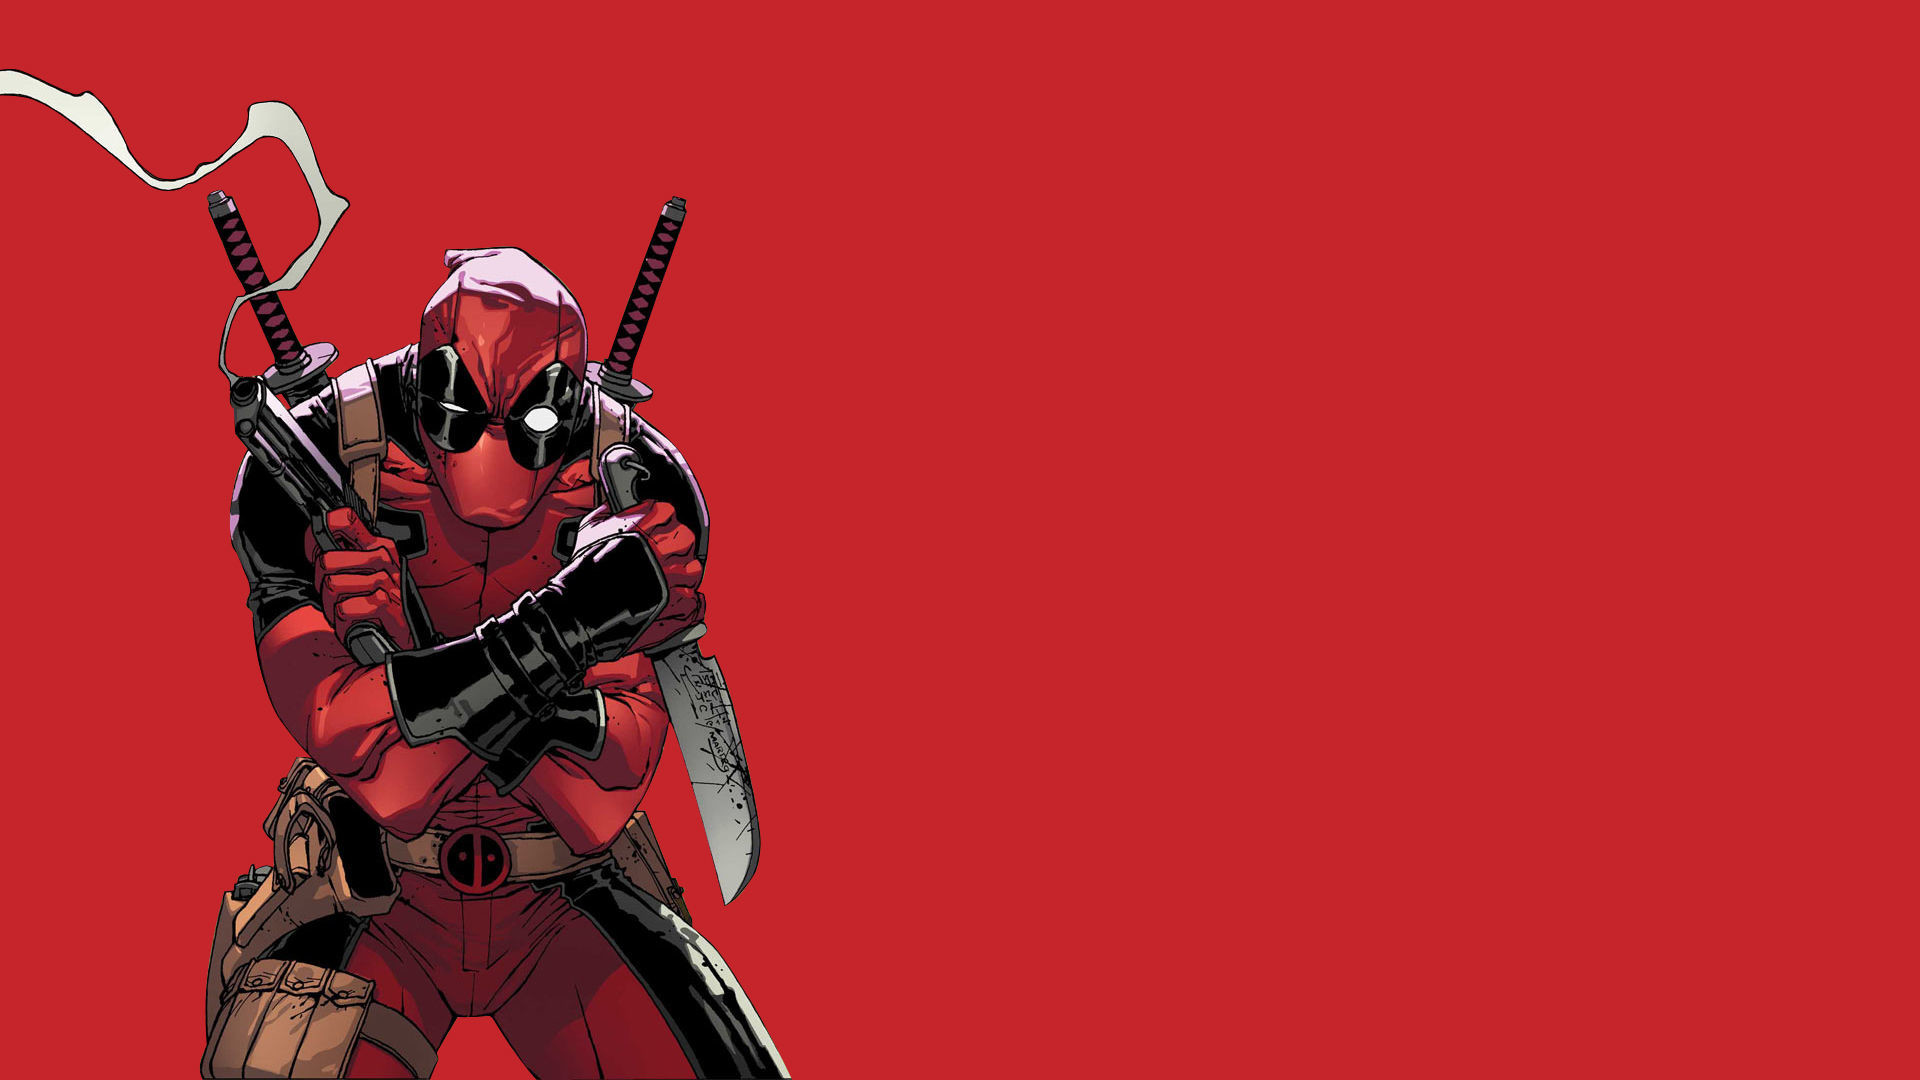 1920x1080 Spider Man Deadpool Wallpapers HD Free